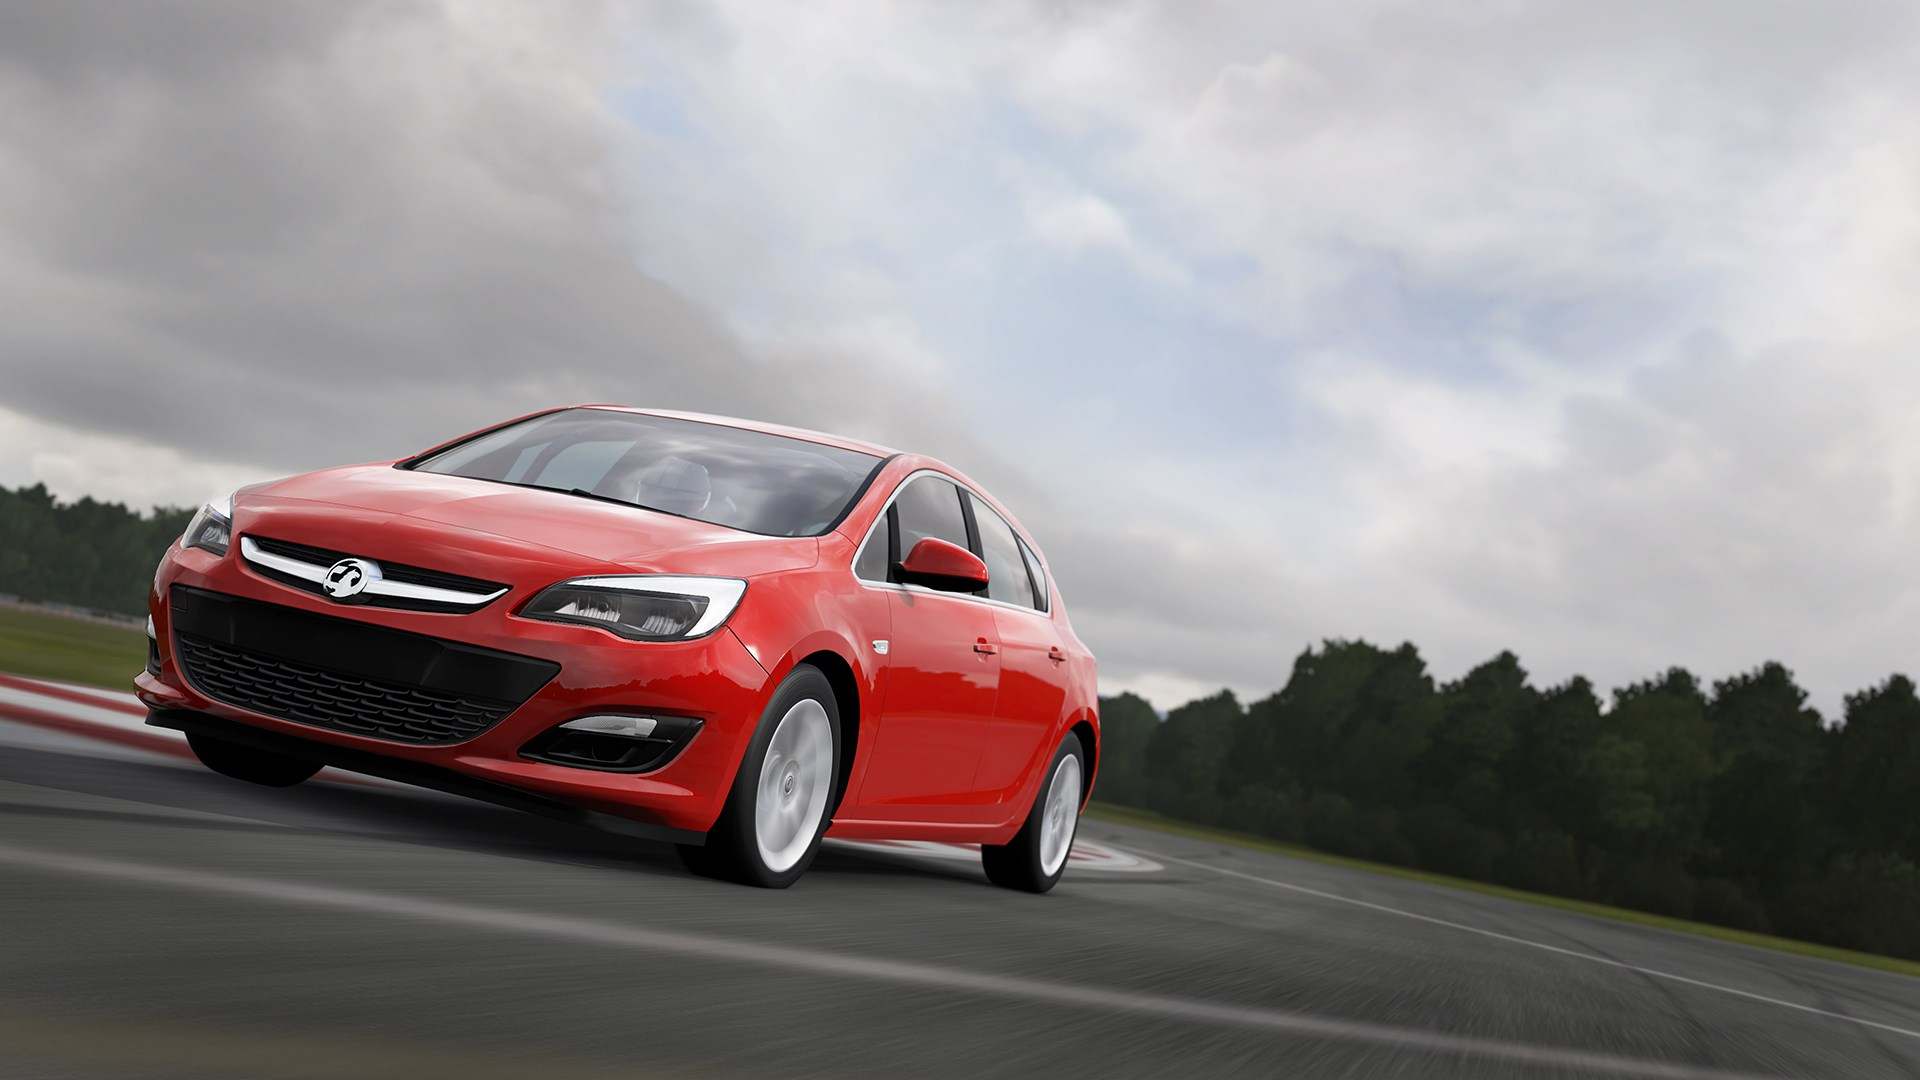 Forza Motorsport 5 2013 Vauxhall Astra 1.6 Tech Line Top Gear Edition